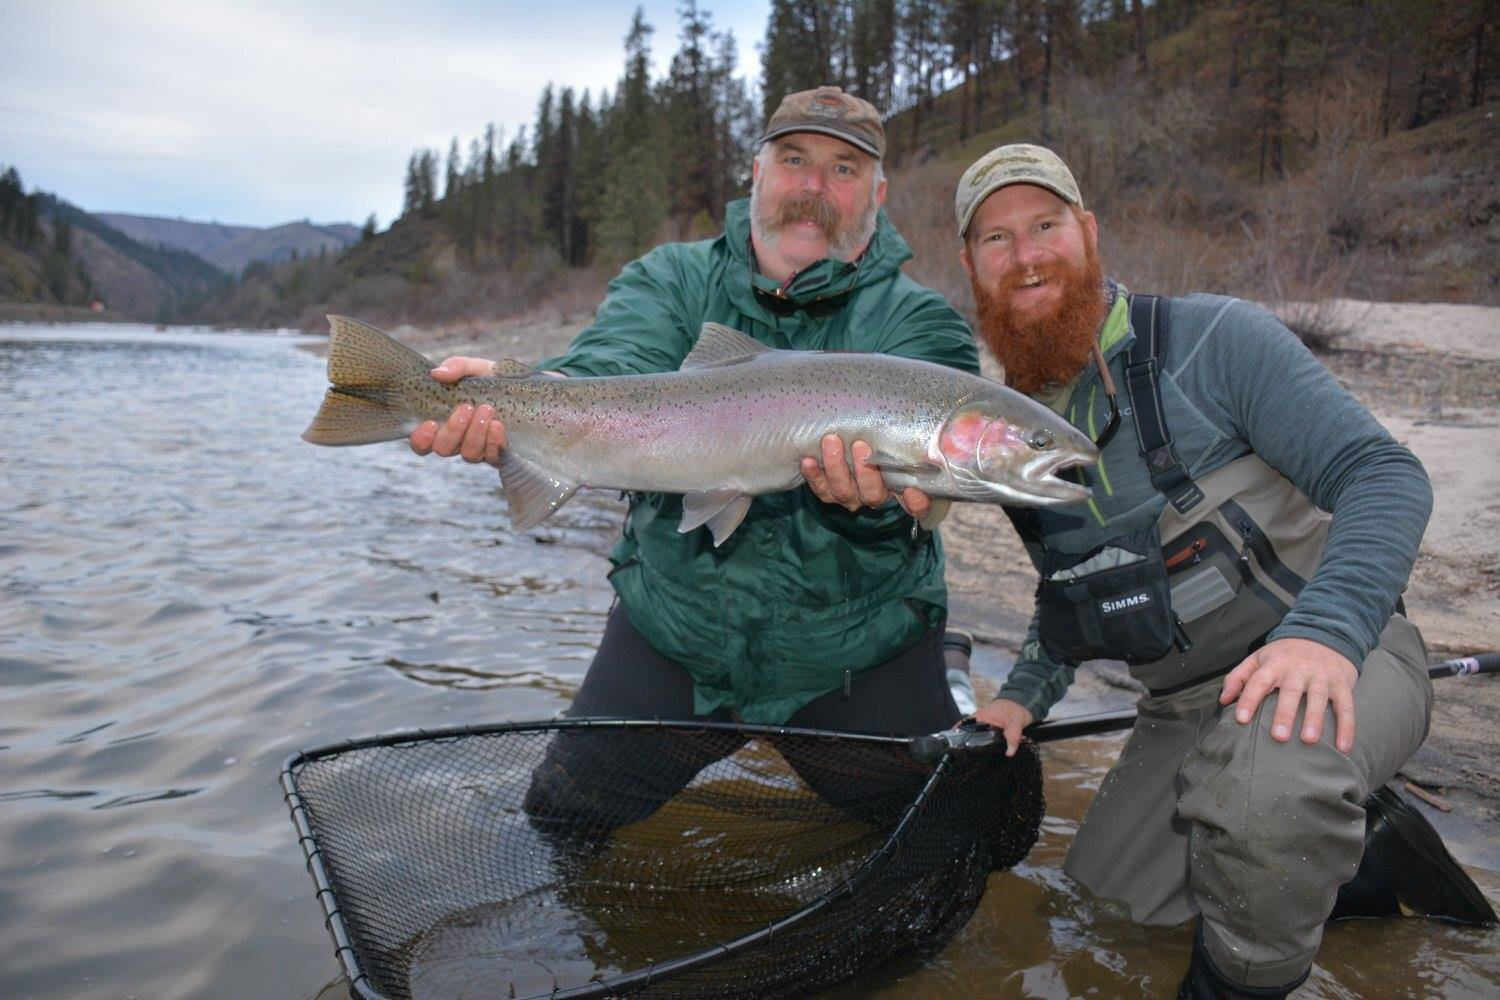 Fly caught steelhead